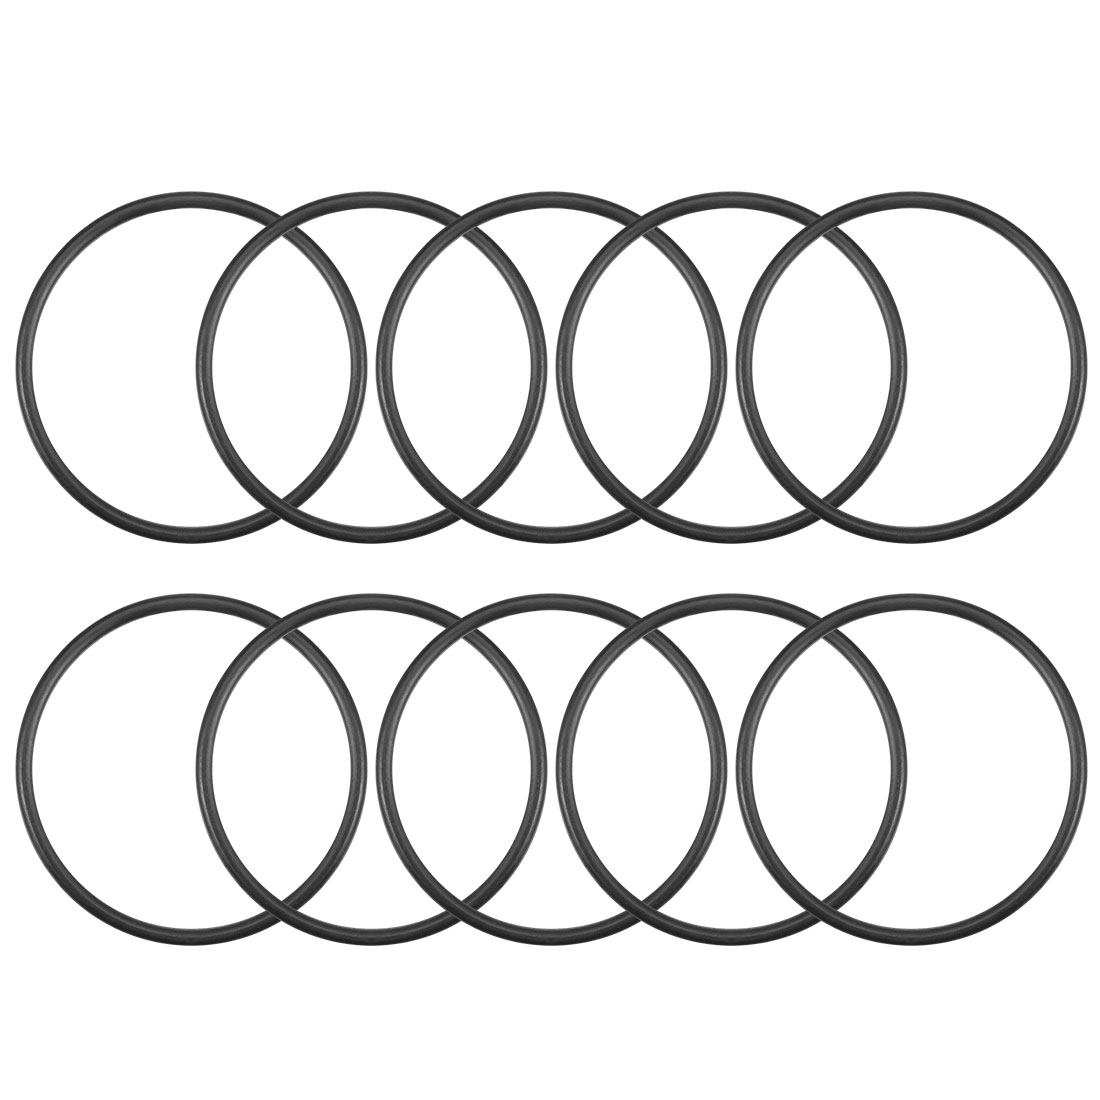 O-Rings Nitrile Rubber 28mm x 31.6mm x 1.8mm Round Seal Gasket 10Pcs